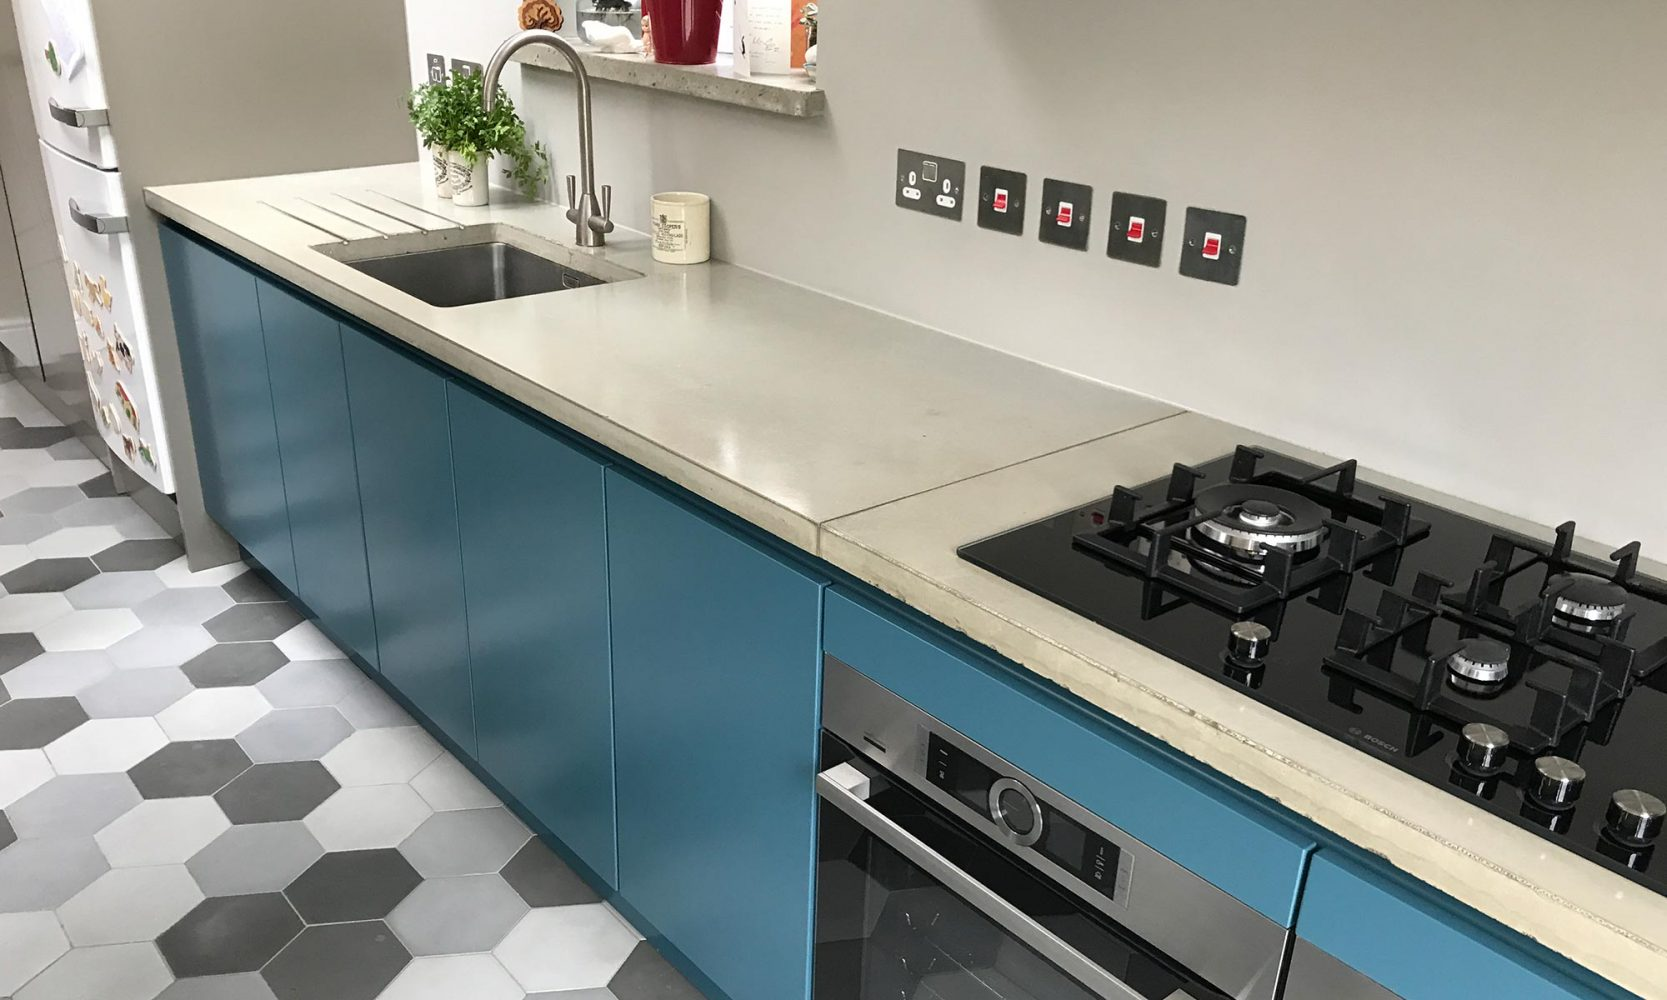 Private House - Polished Concrete Worktops and Tiles - Living Concrete